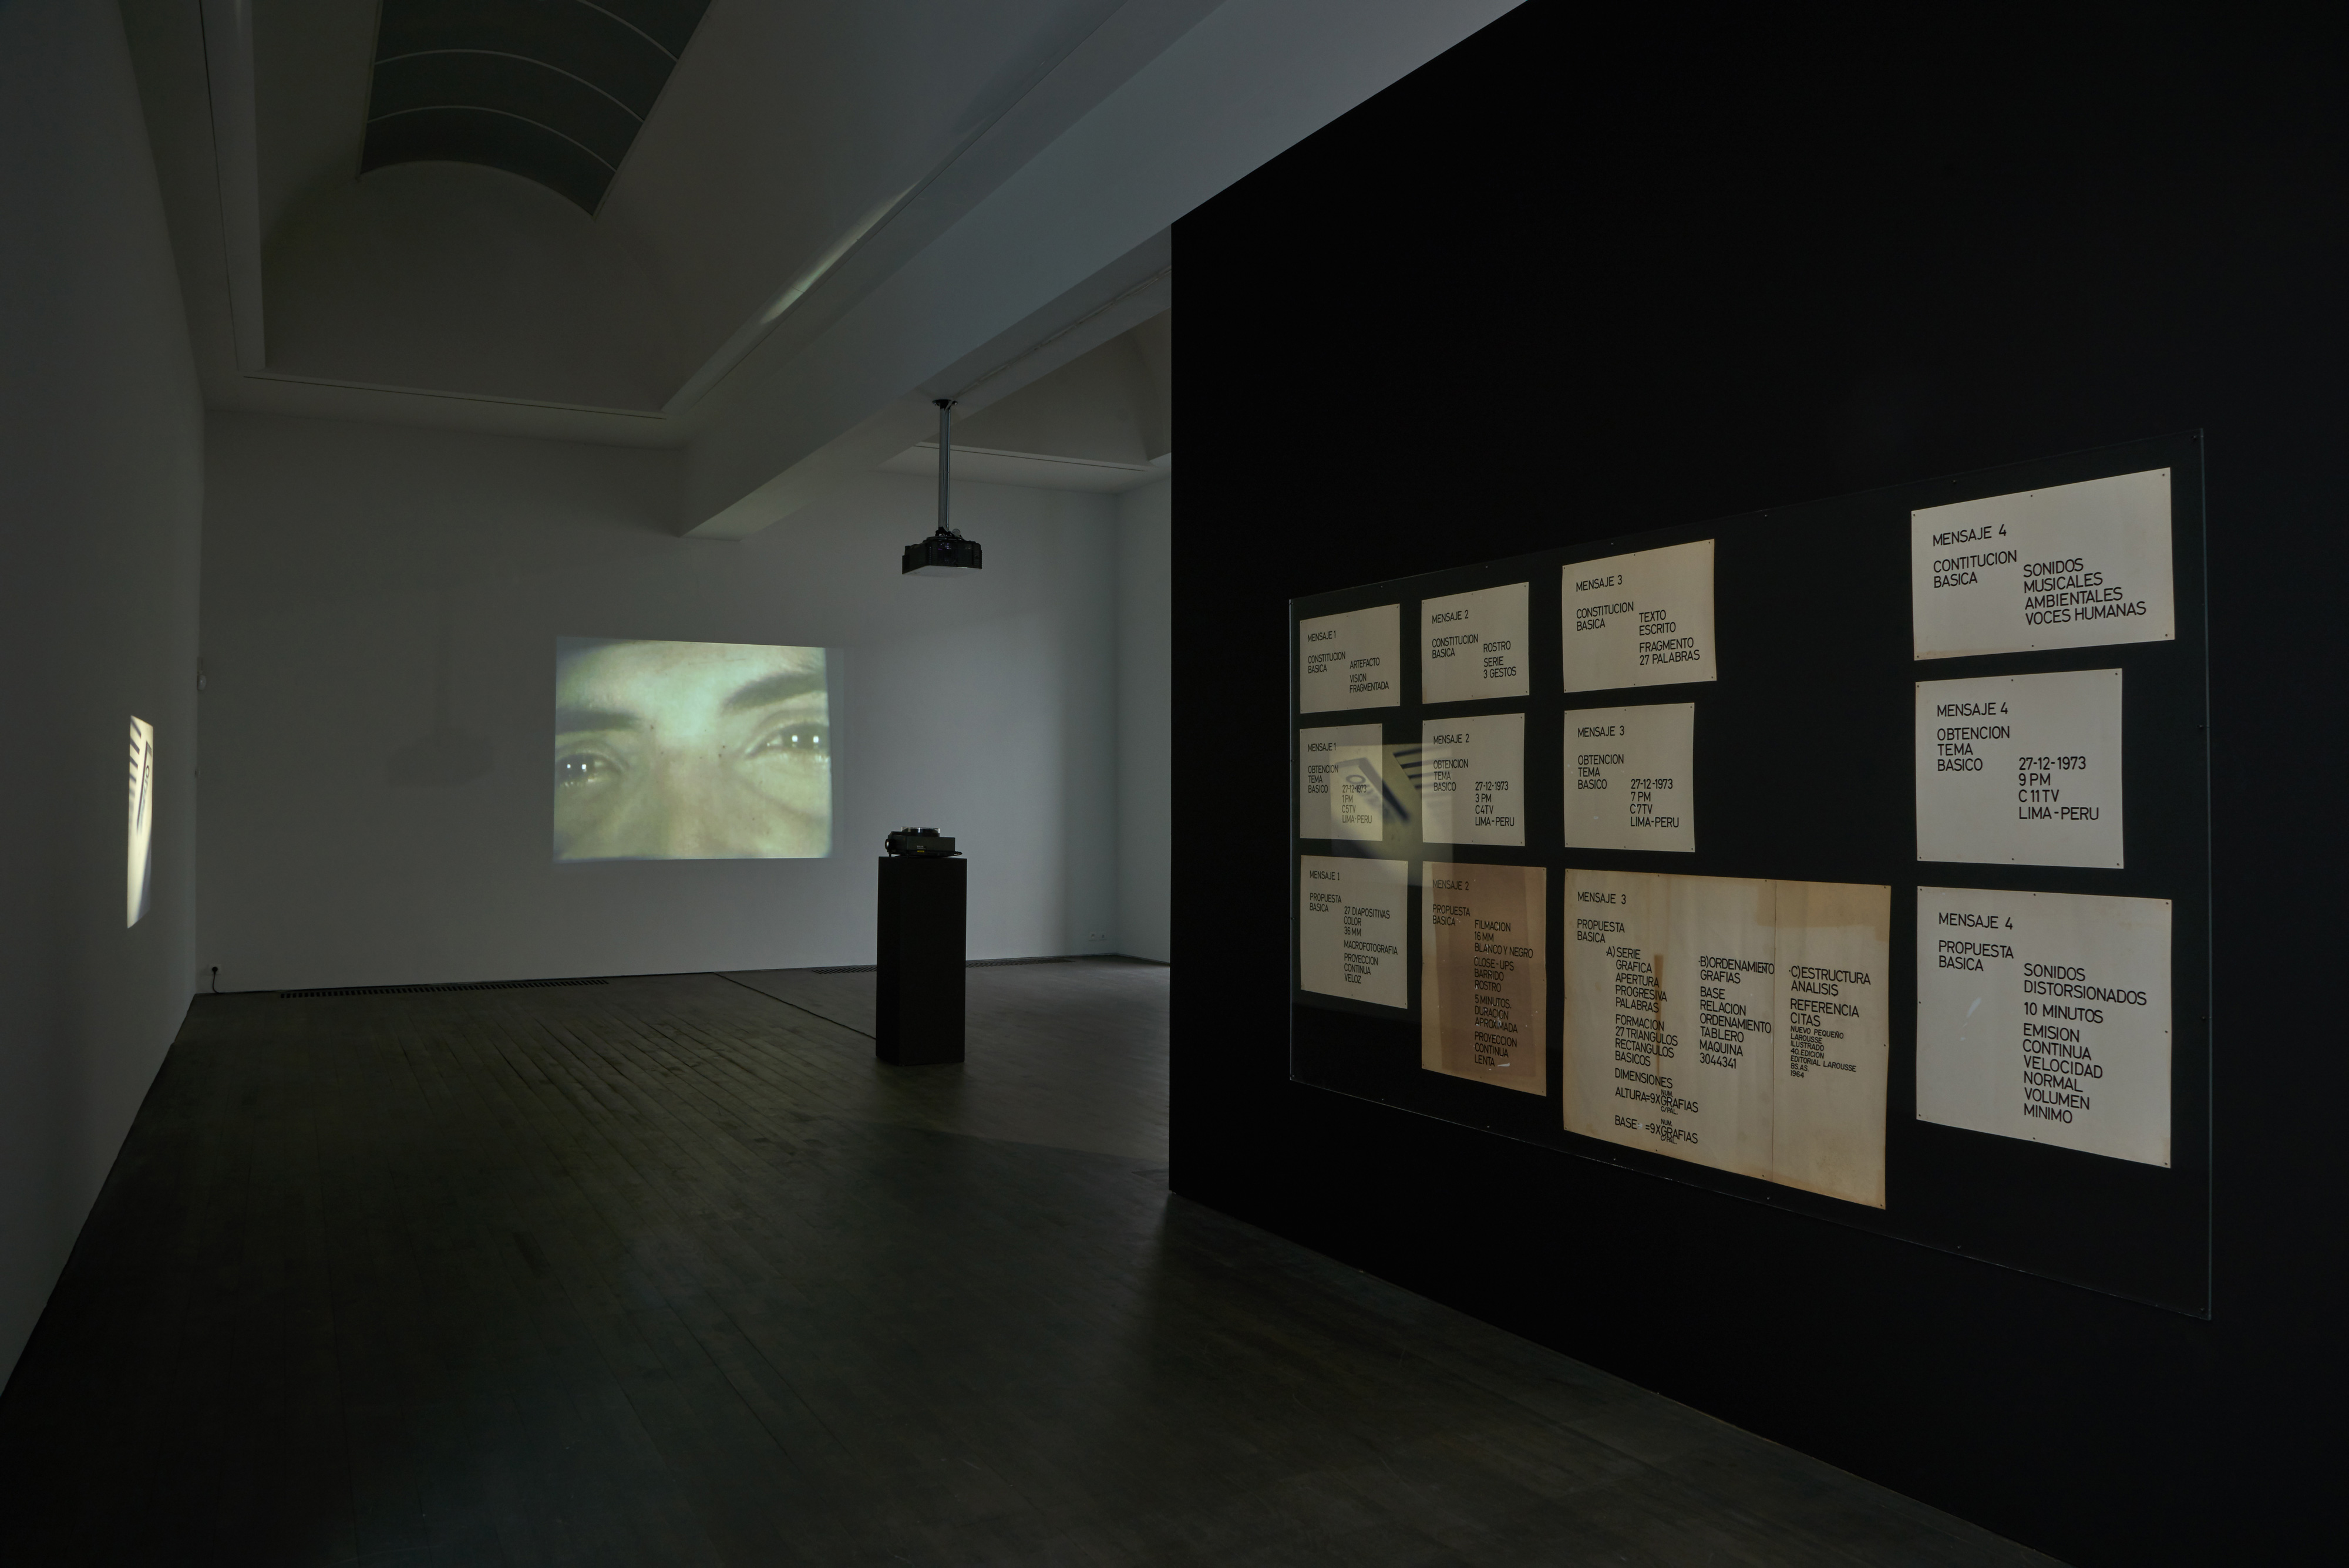 Galerie Barbara Thumm \ Teresa Burga – An Artist or a Computer? Conceptual works from the 1970s